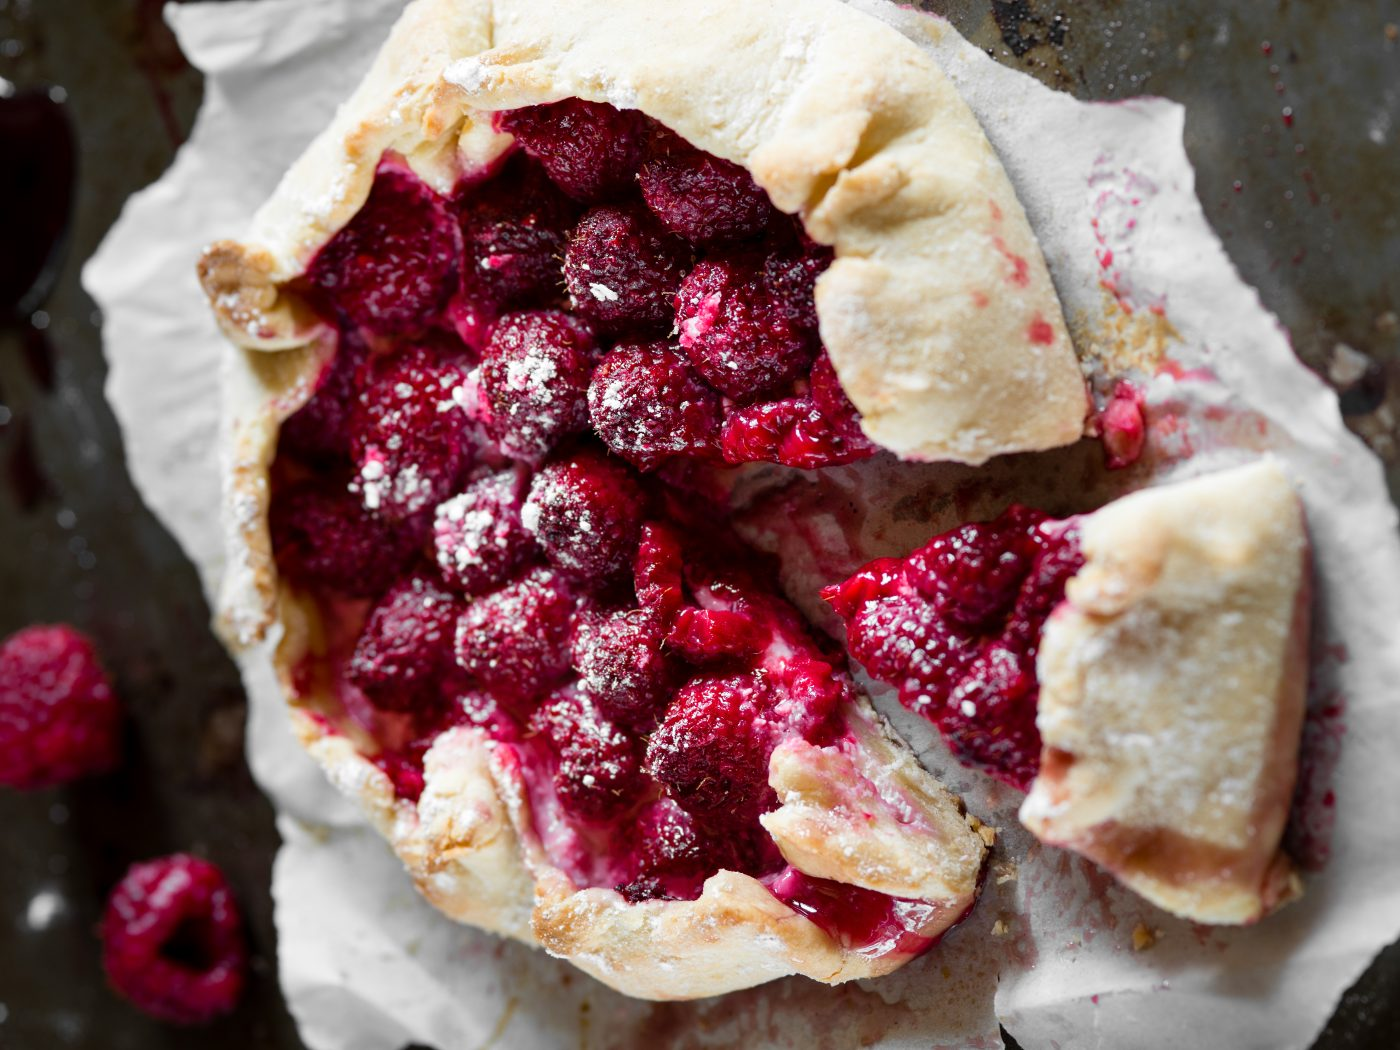 Autumn dessert raspberry galette with cream cheese